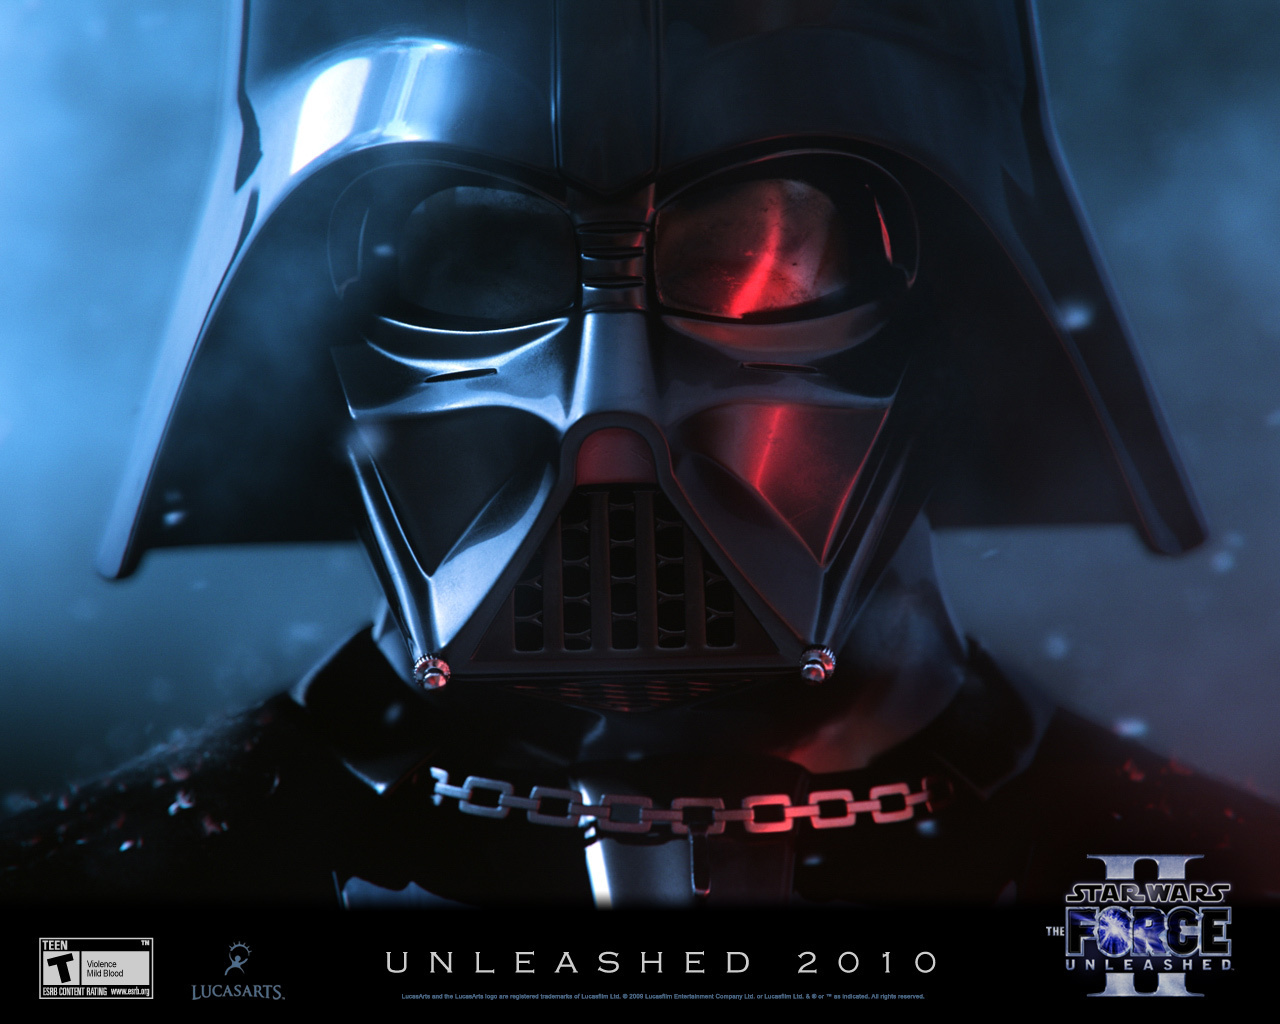 star wars force unleashed 2 character customization